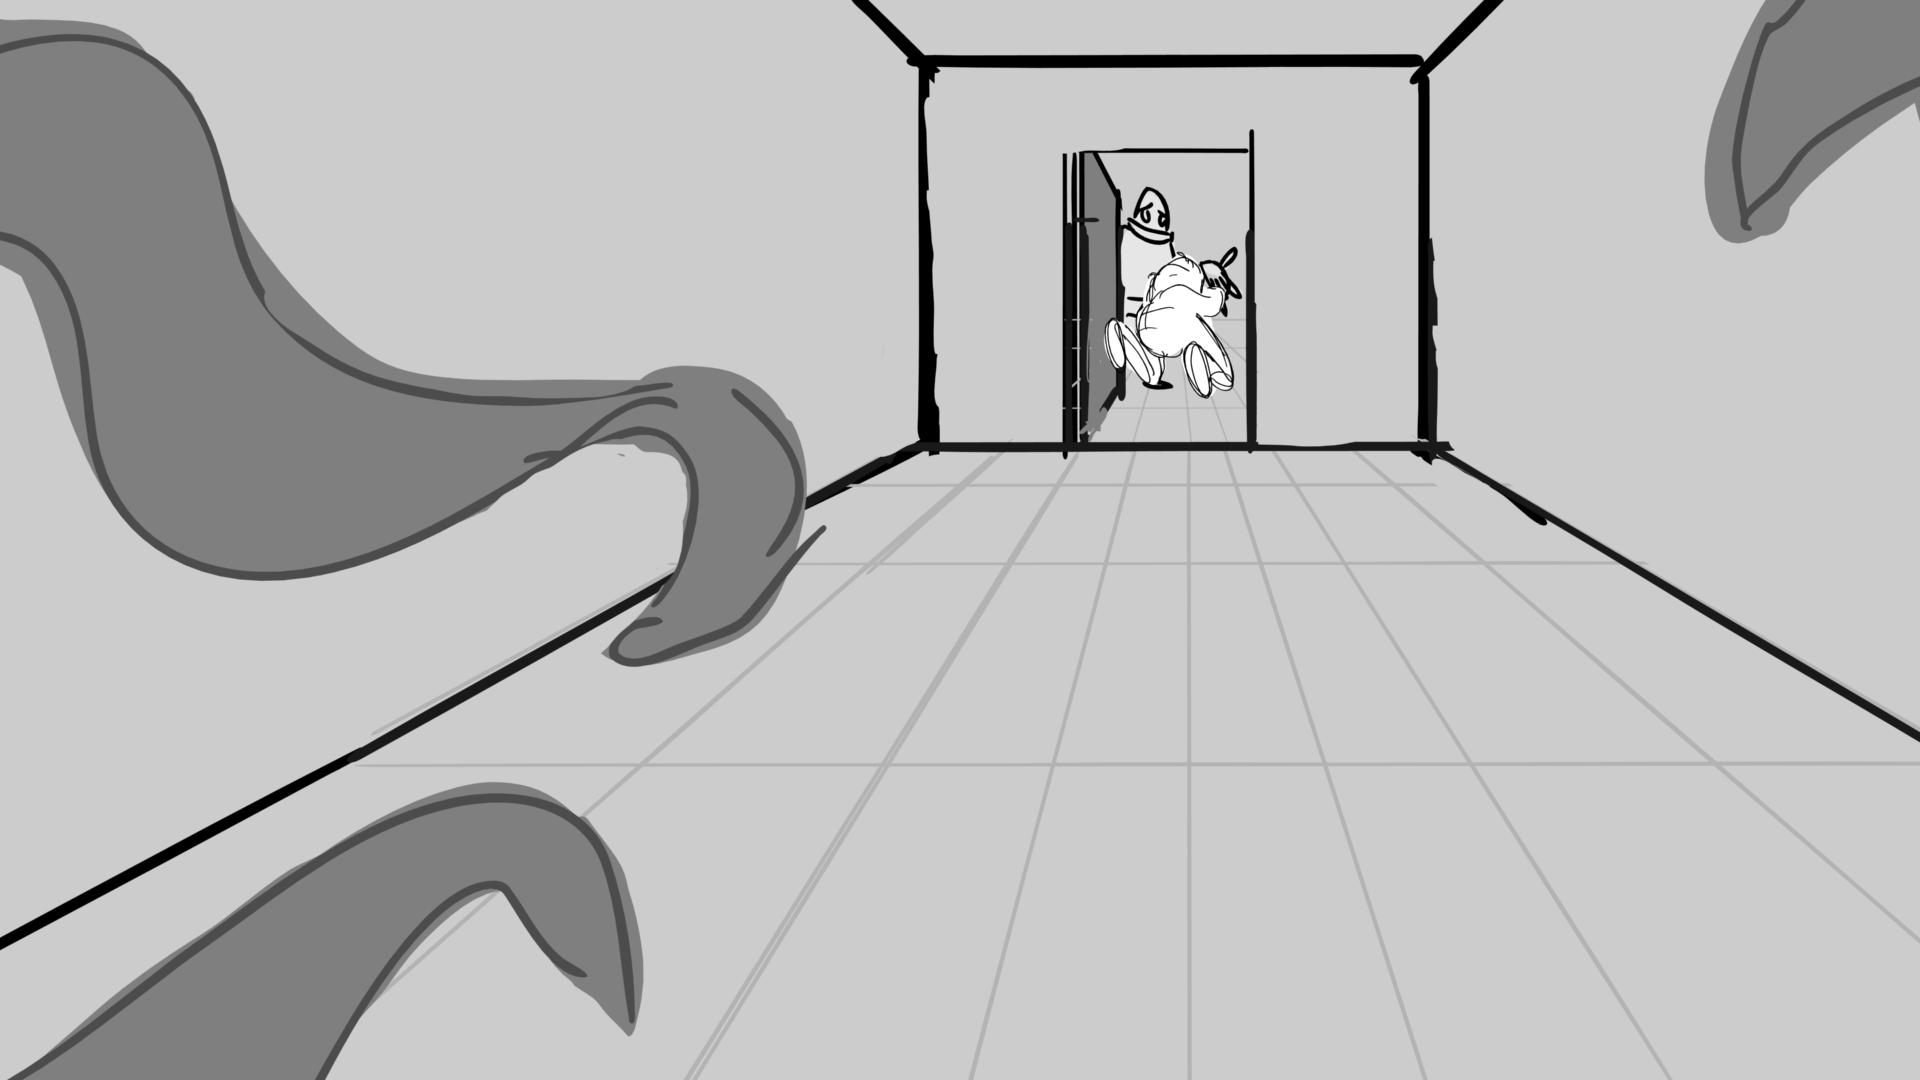 Stringari_Rachel_DudmanTS4_Animatic-191.jpg